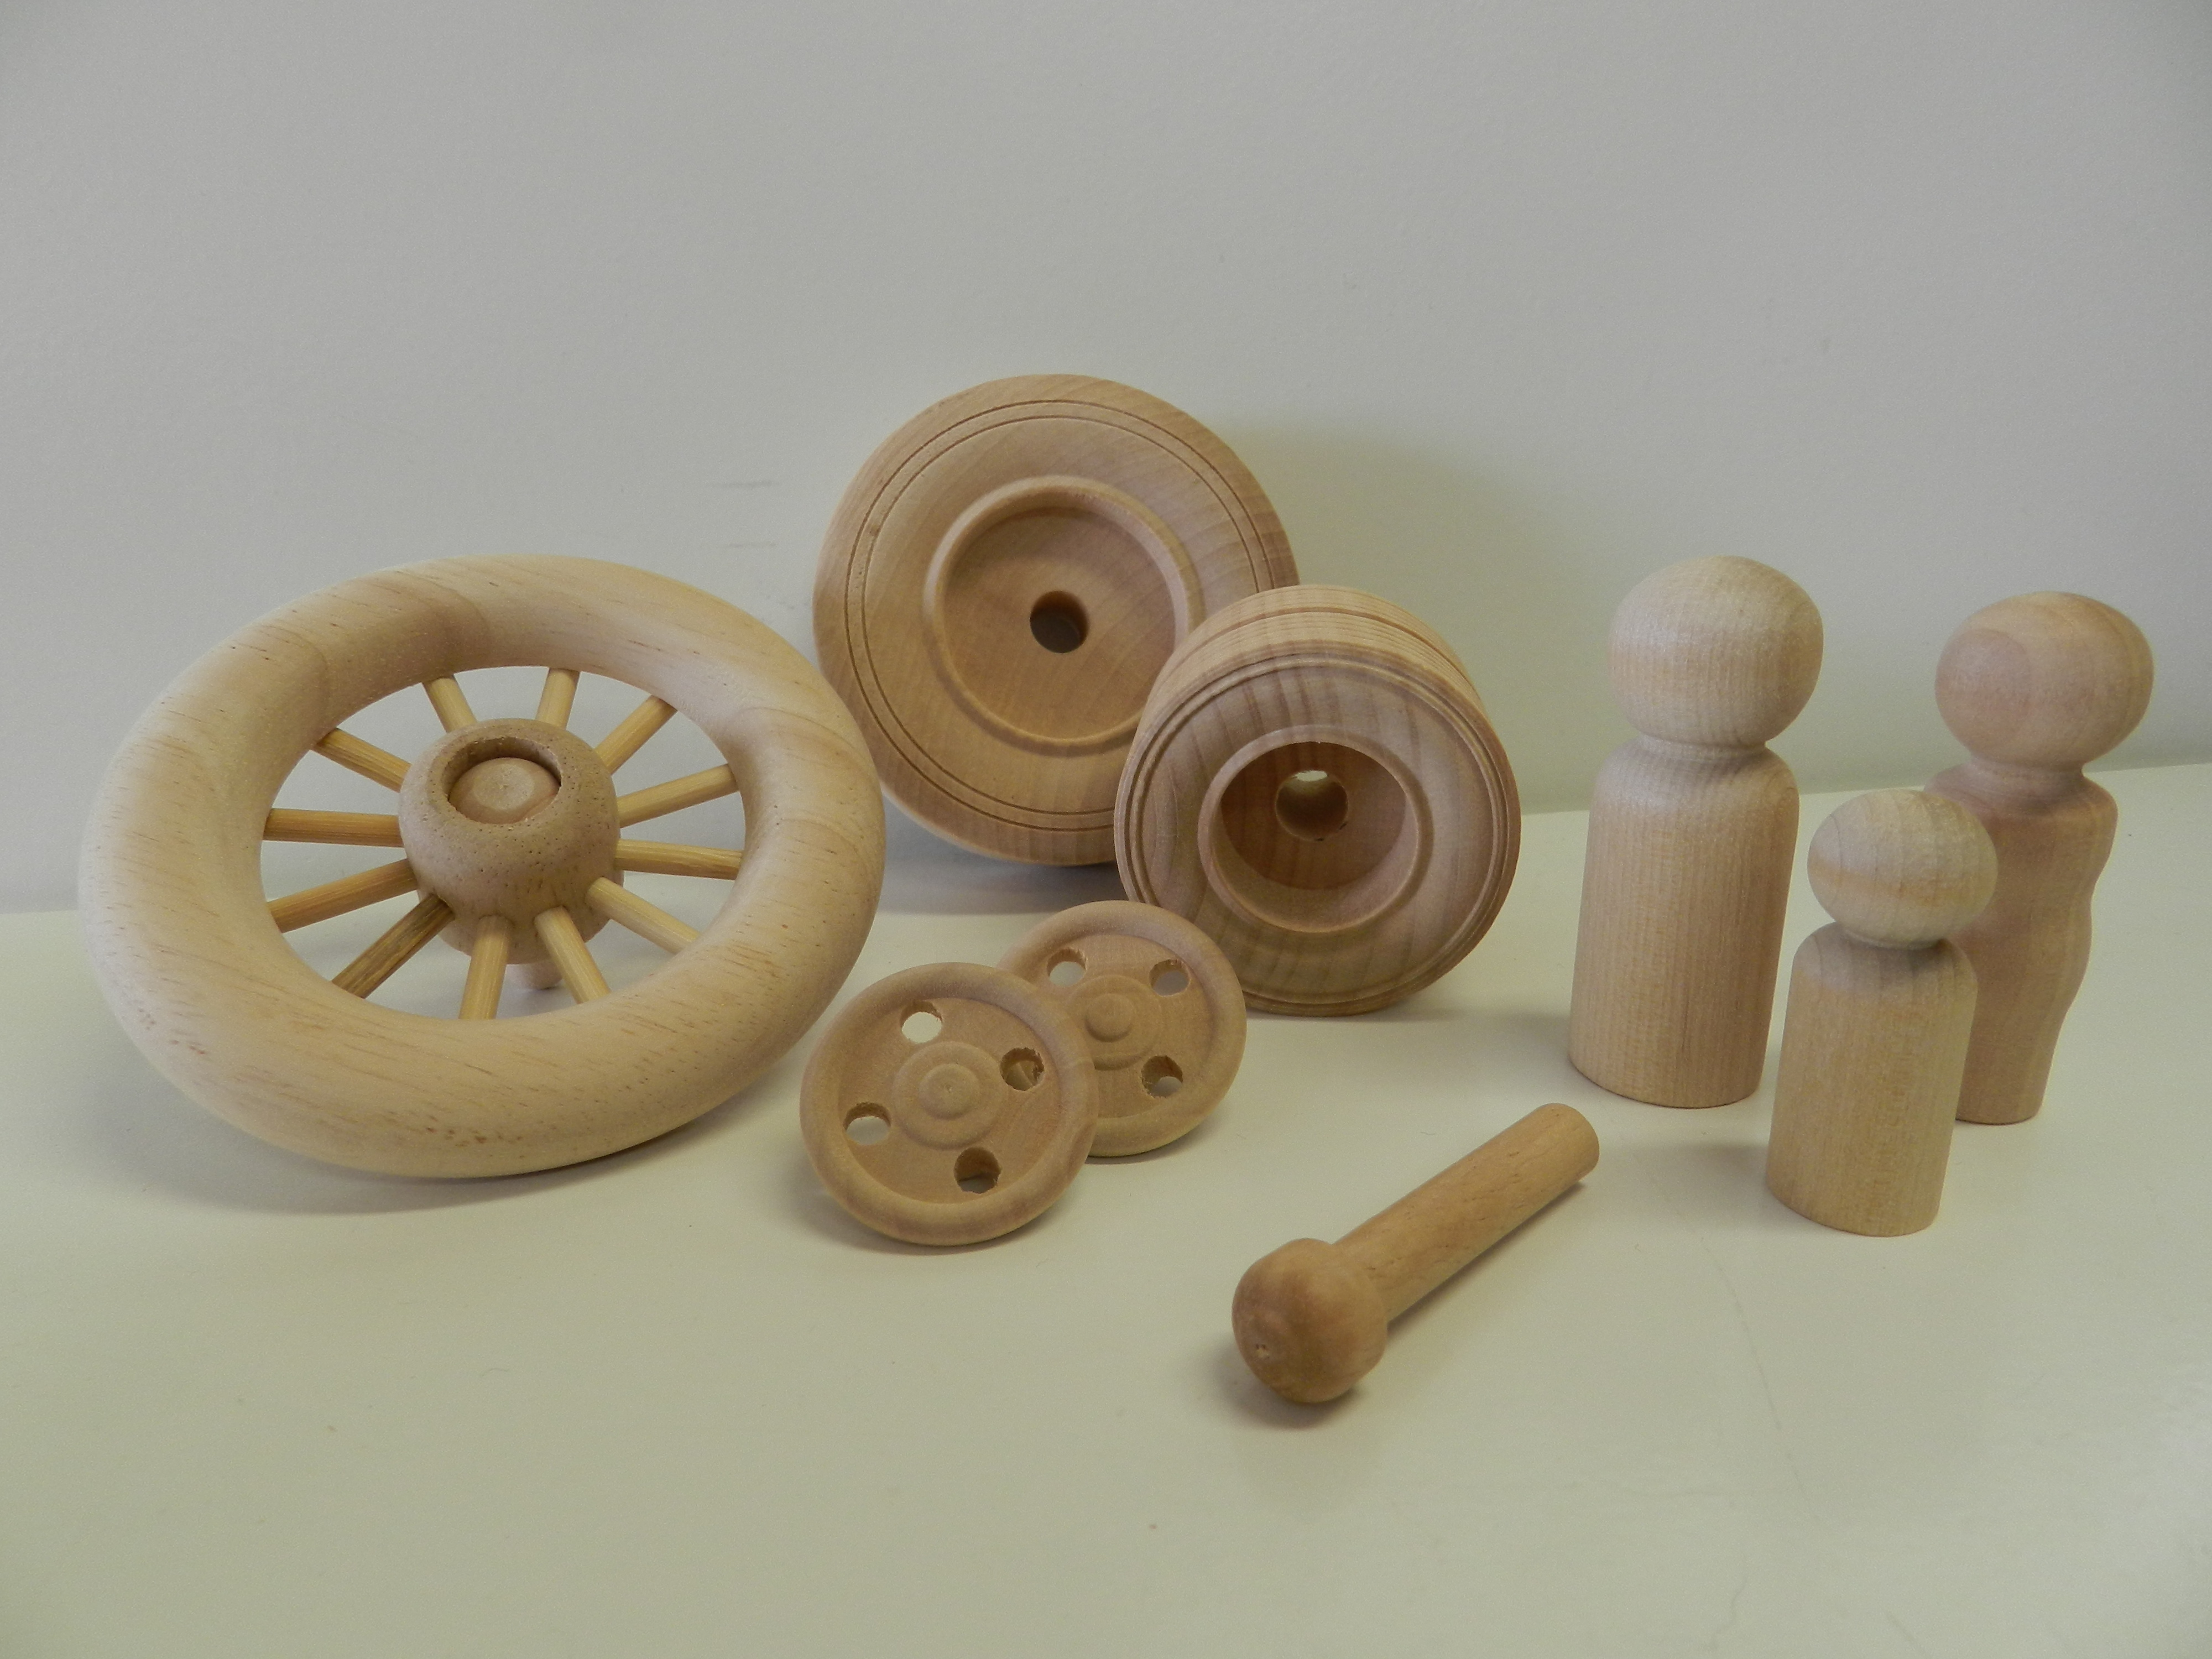 Wood Toy Donation To Help Woodworkers Bear Woods Match